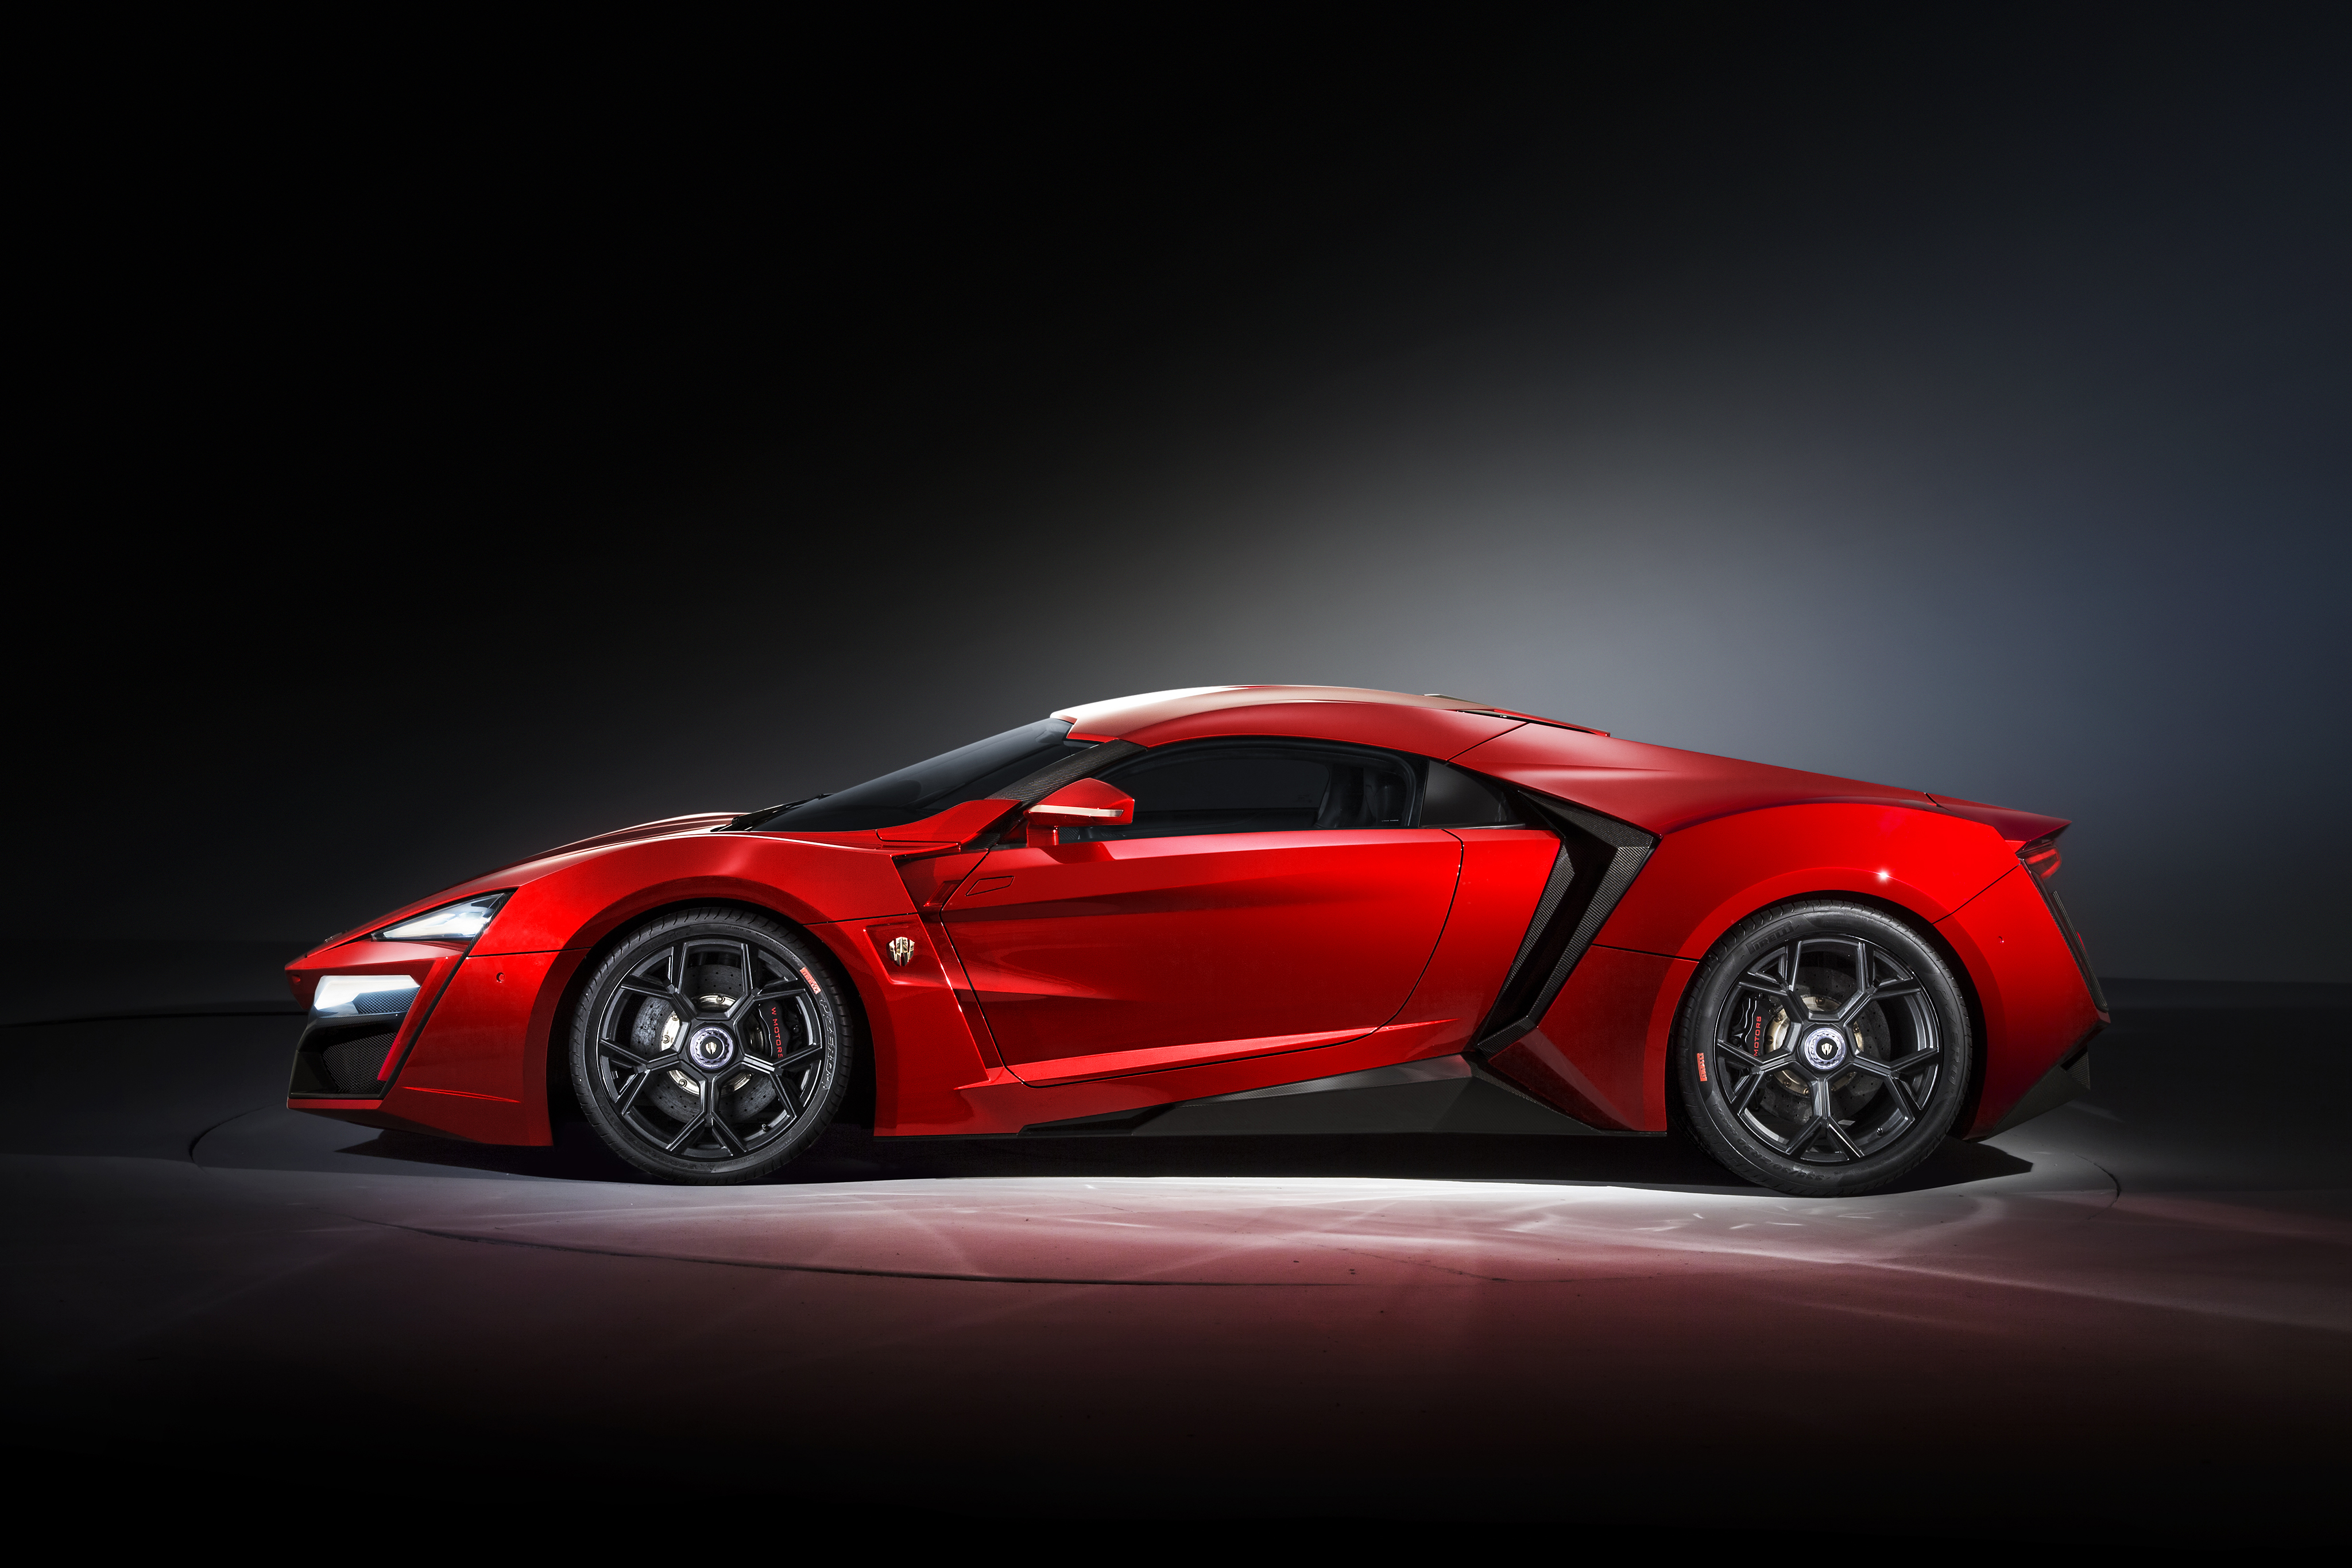 Lykan Hypersport Wallpapers Images Photos Pictures Backgrounds